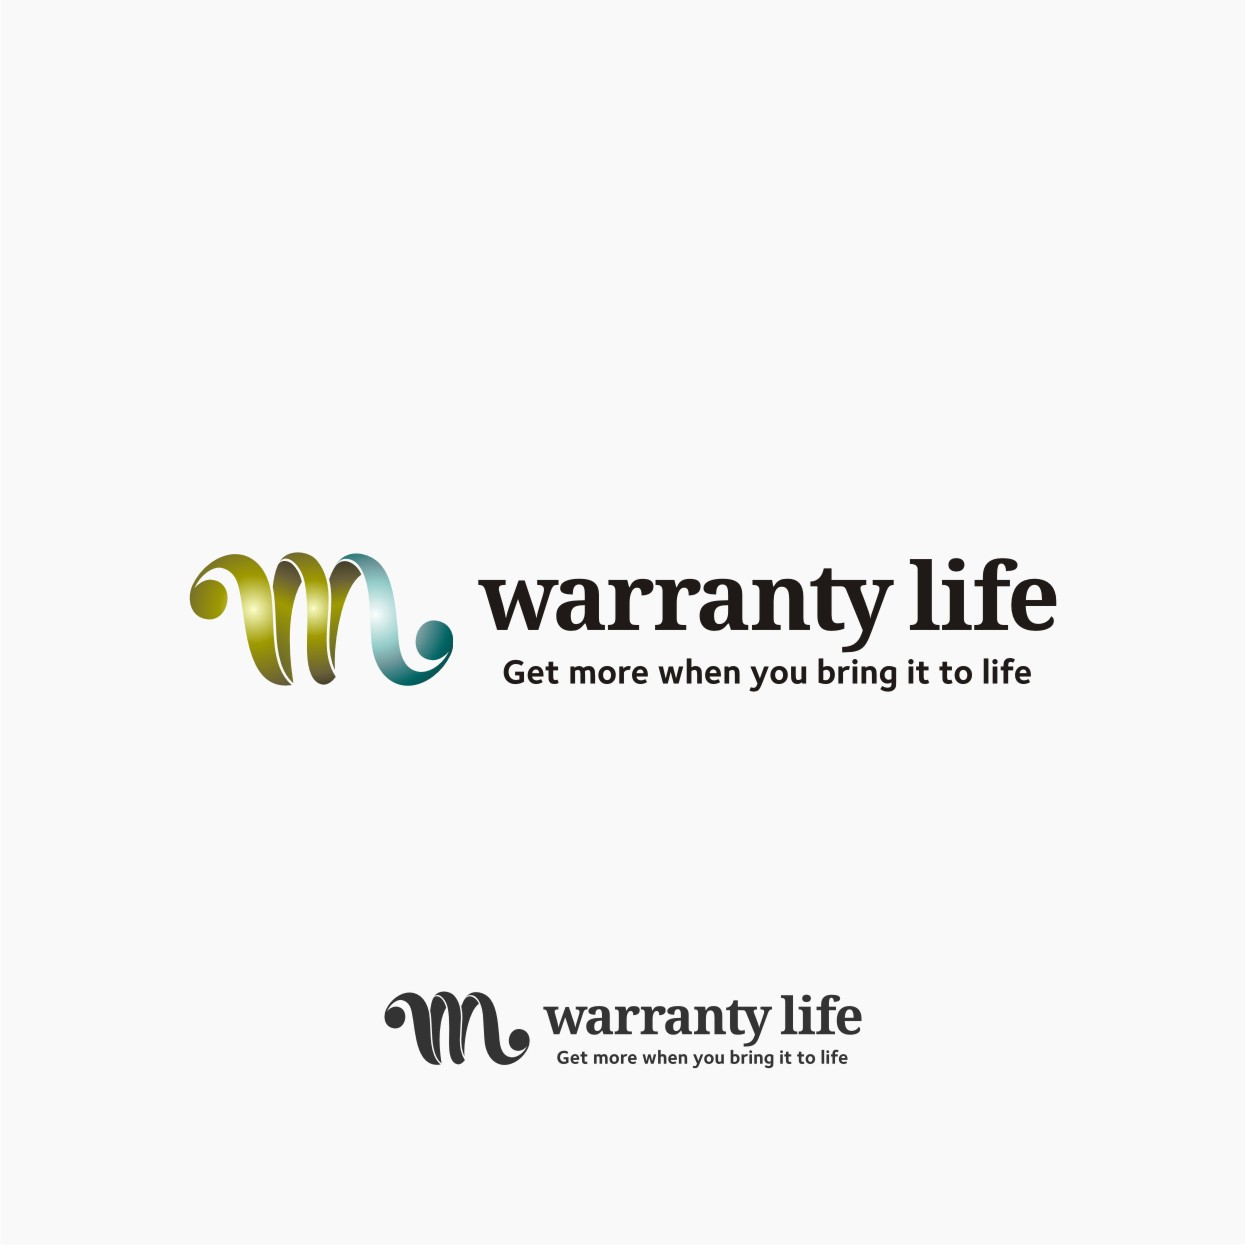 Logo Design by graphicleaf - Entry No. 47 in the Logo Design Contest WarrantyLife Logo Design.